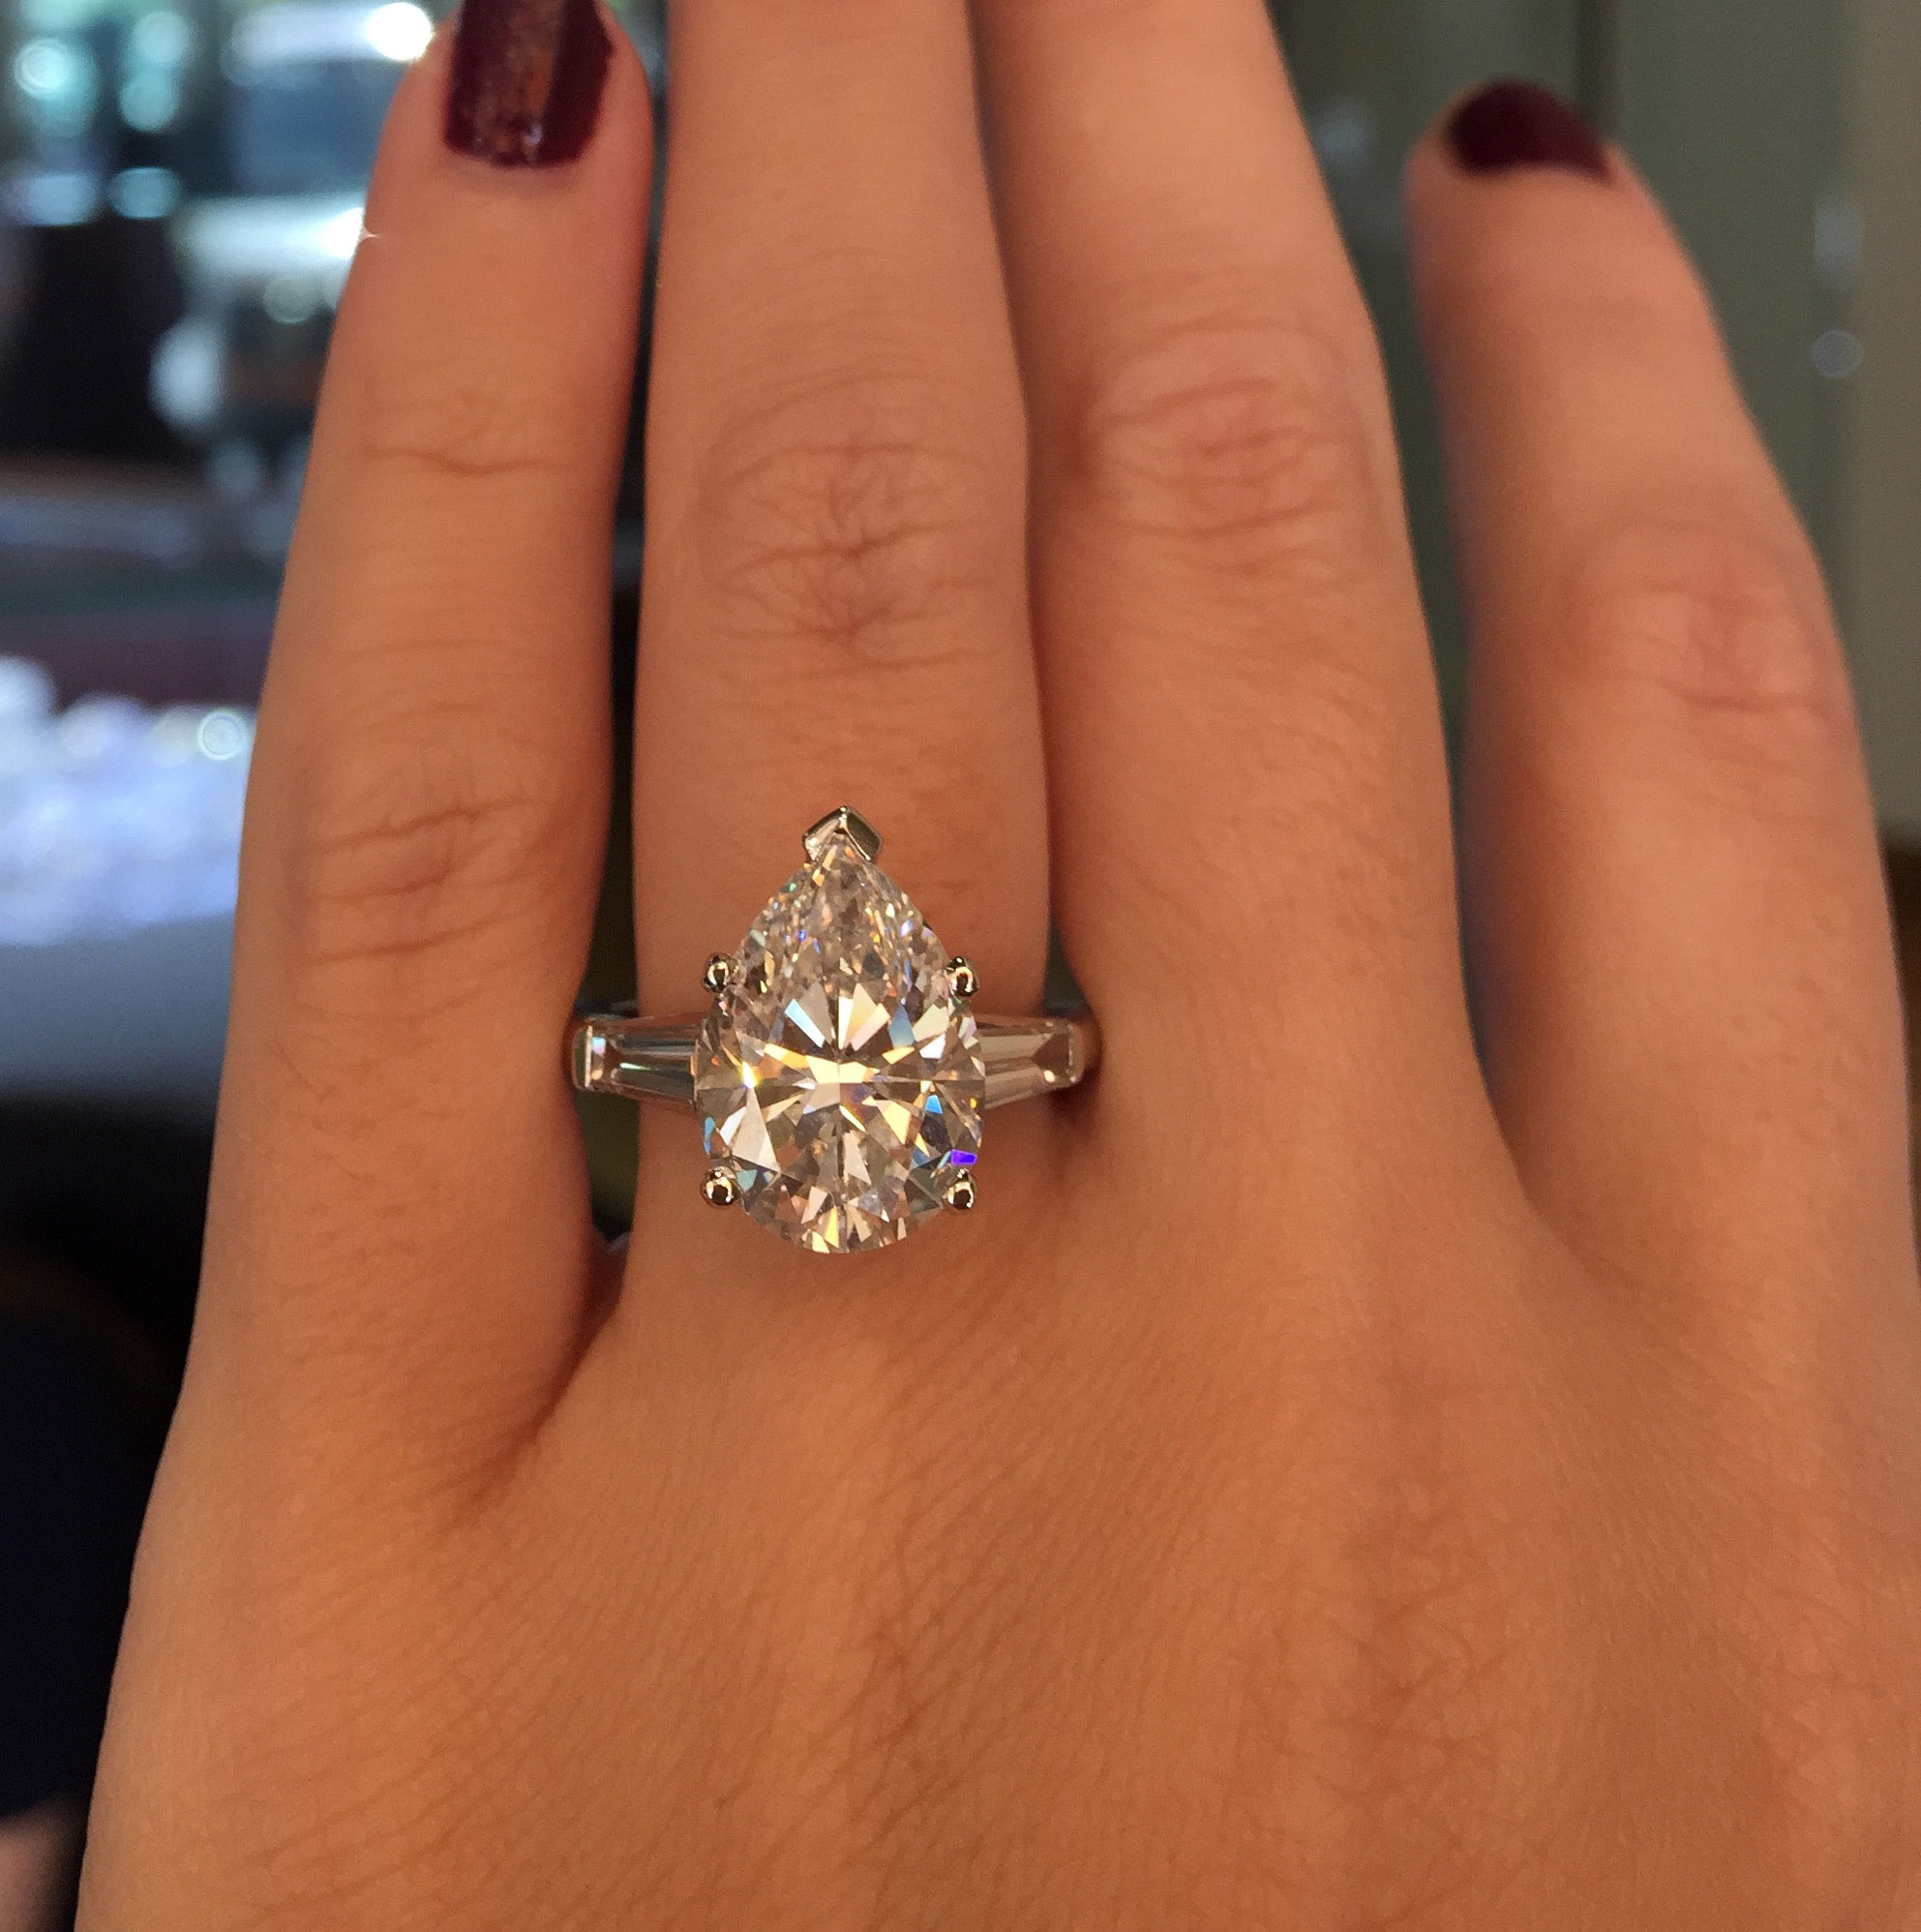 Phenomenal Platinum 5 28Ct Pear Shape Gia Certified Diamond Engagement Ring Short Hairstyles Gunalazisus